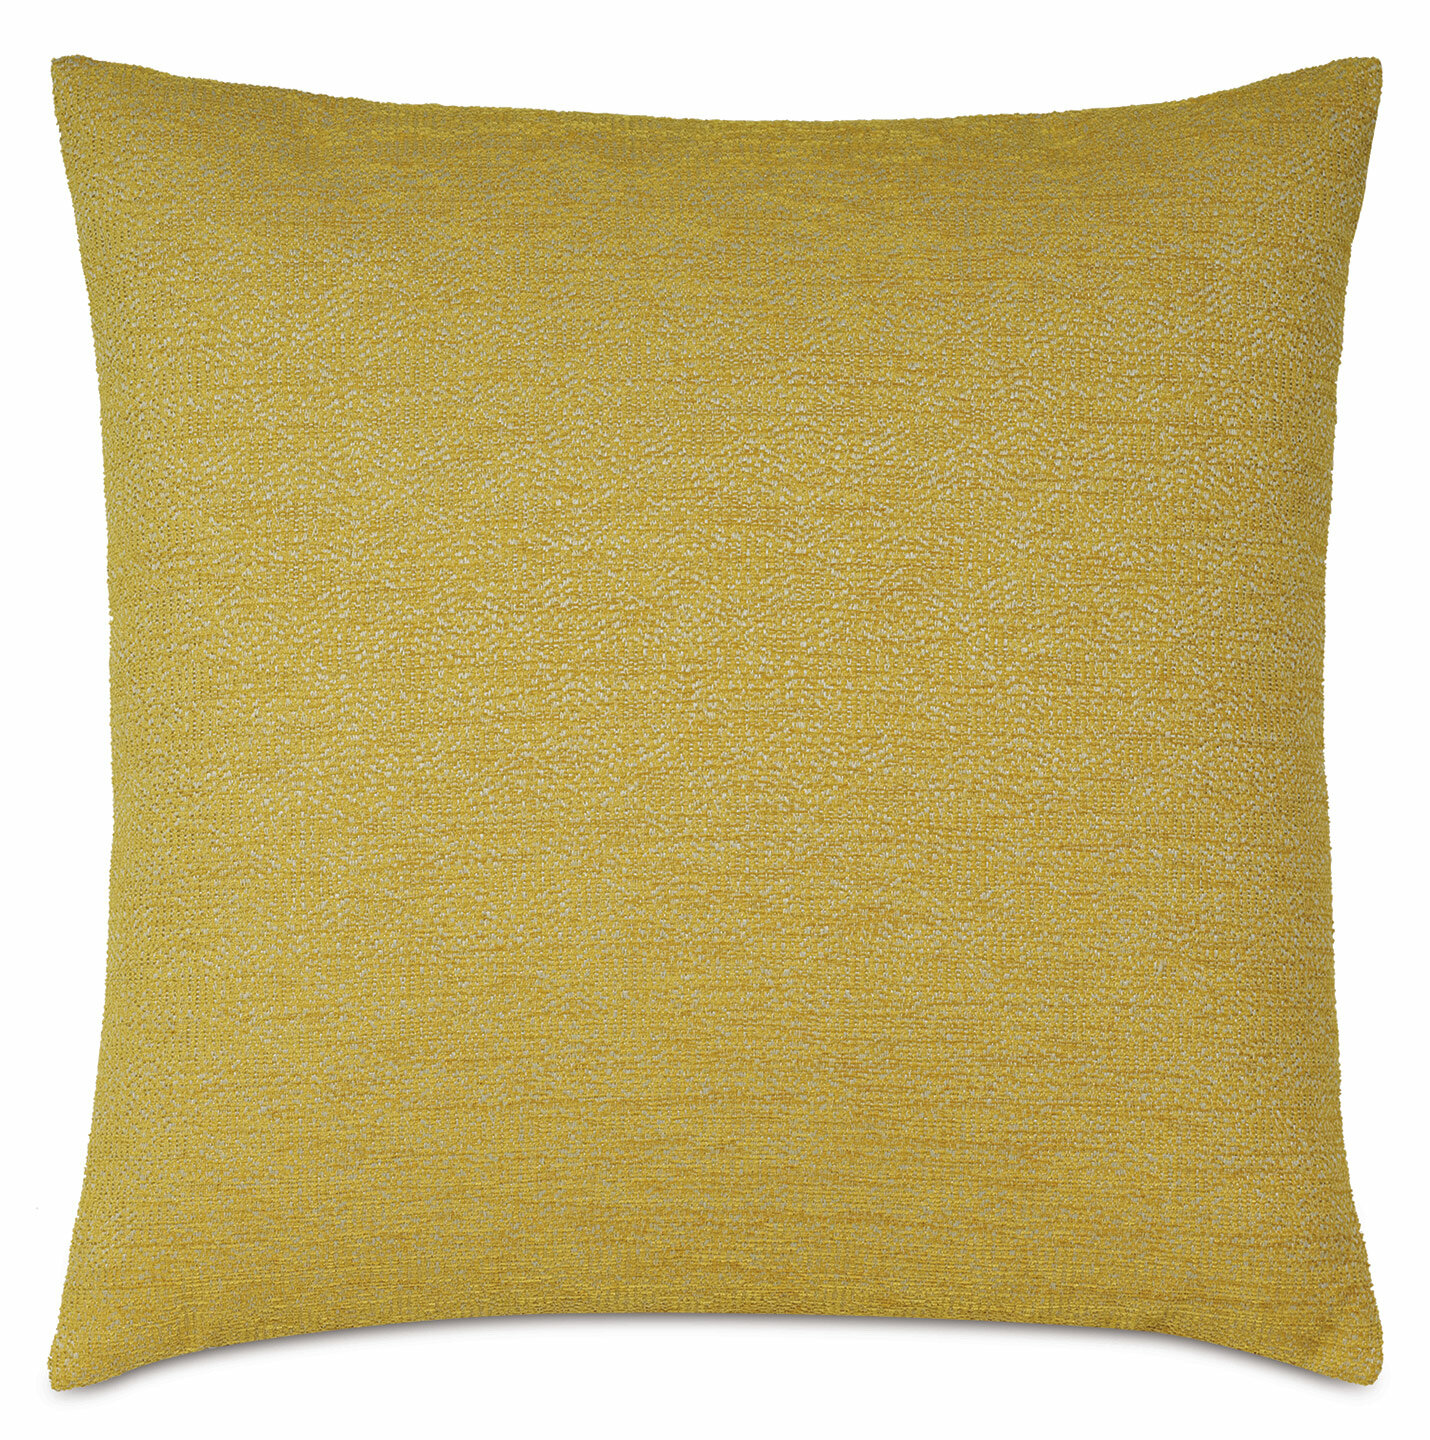 Eastern Accents Jace Textured Throw Pillow Perigold